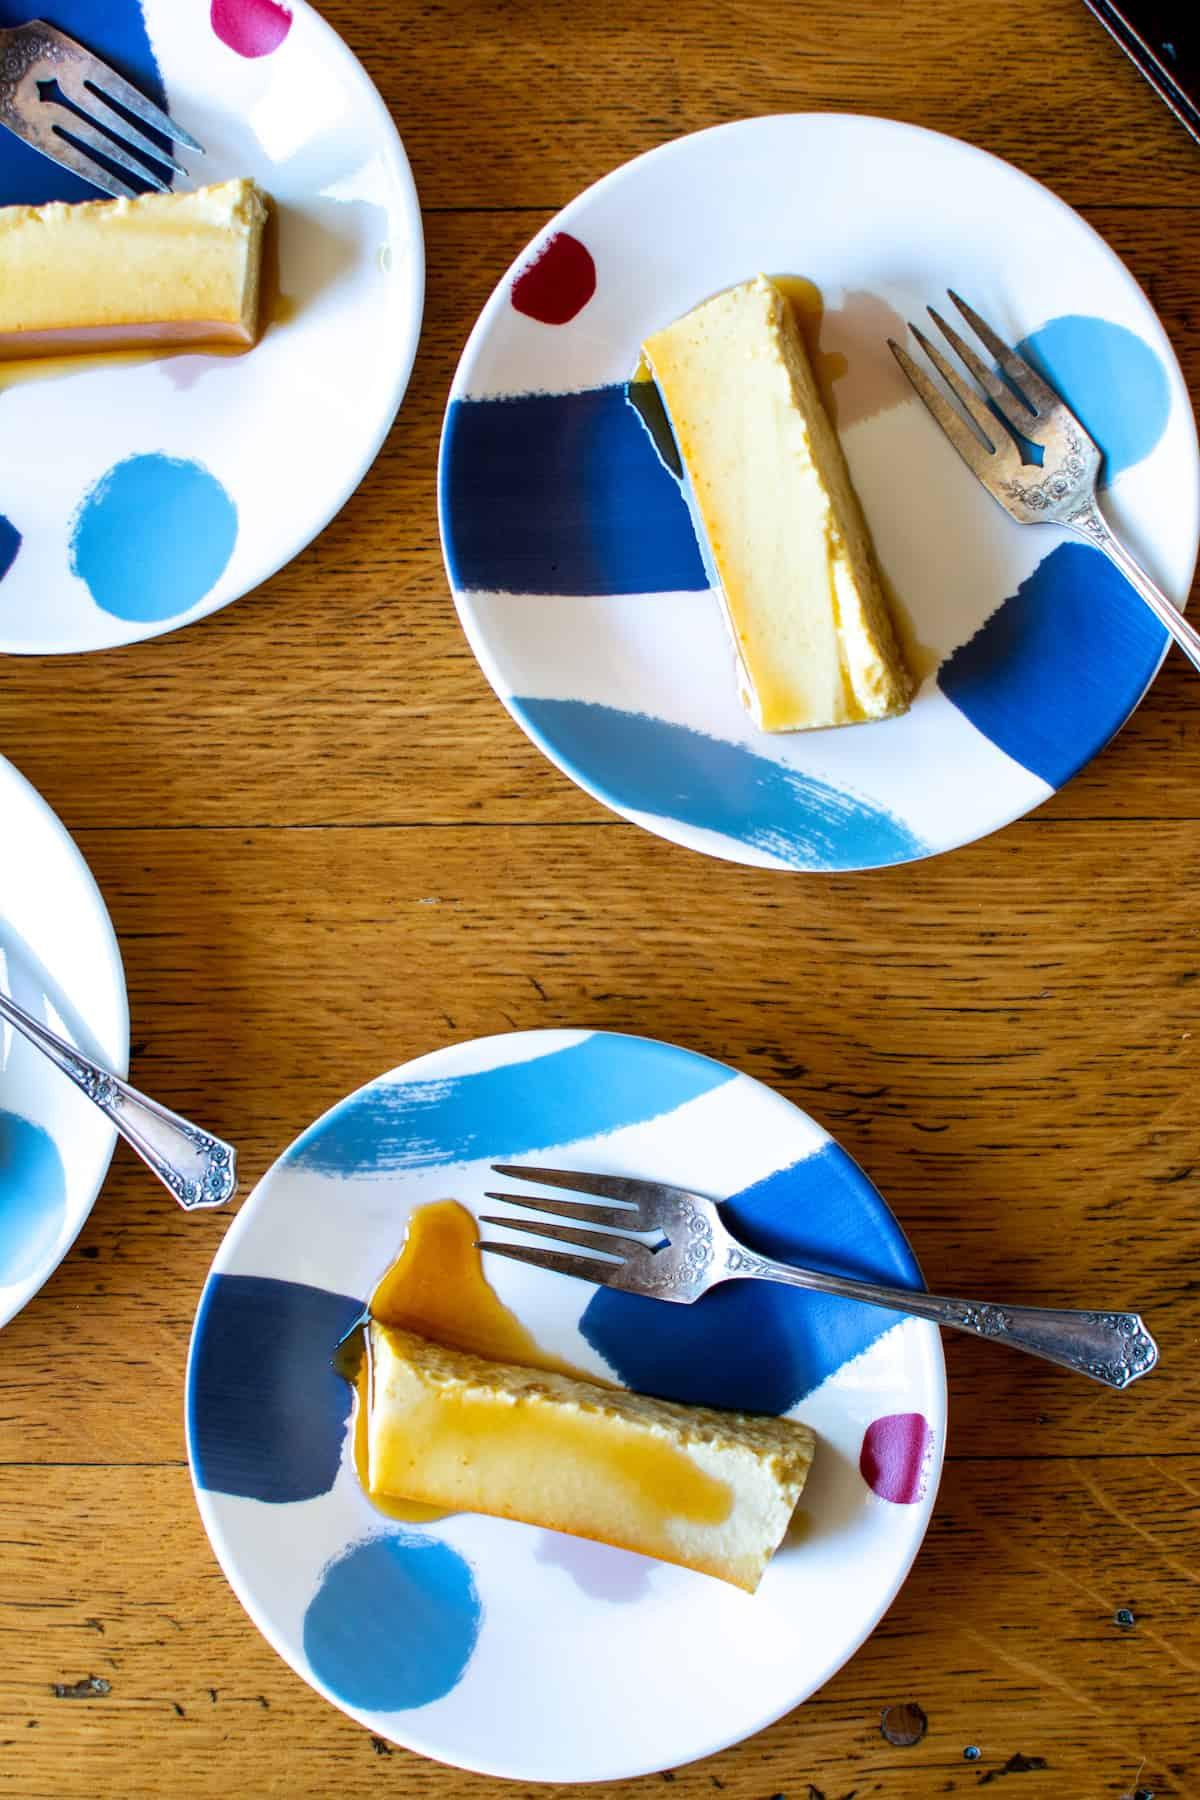 Blue and white dessert plates with pieces of flan on them and forks on the plates.